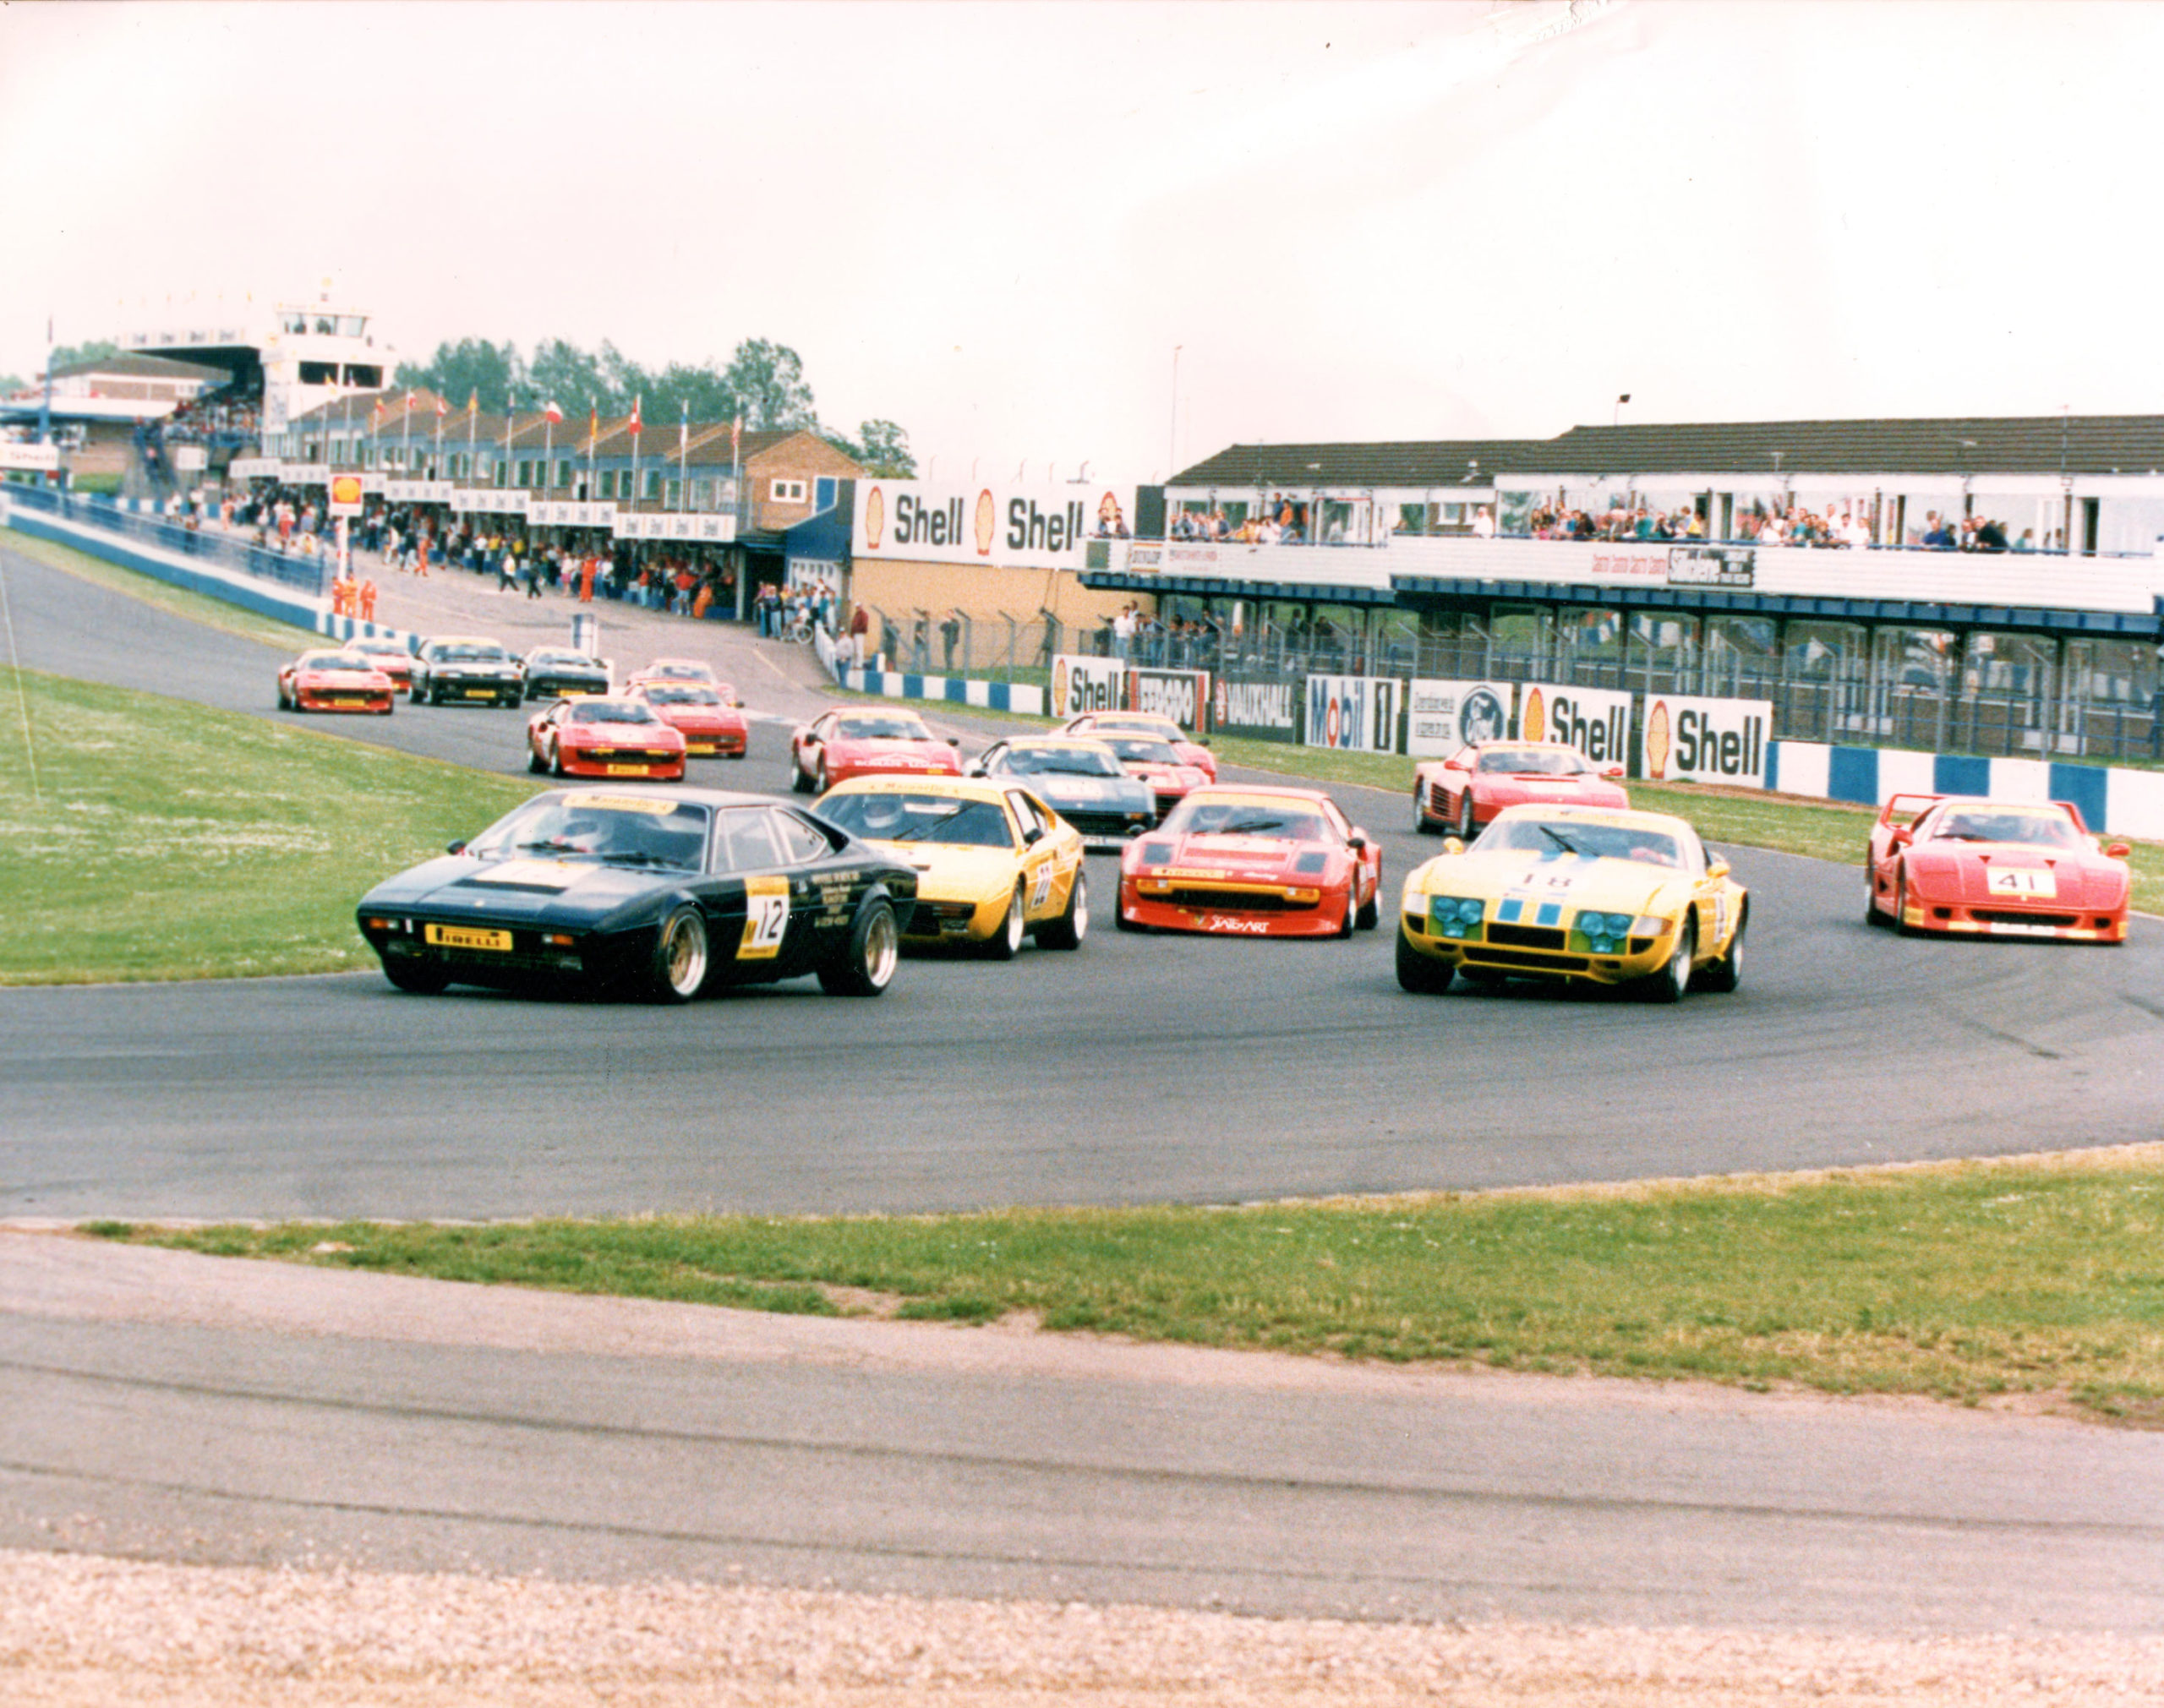 GT4s seem to be the leading Tipo during this late 80s race at Donington